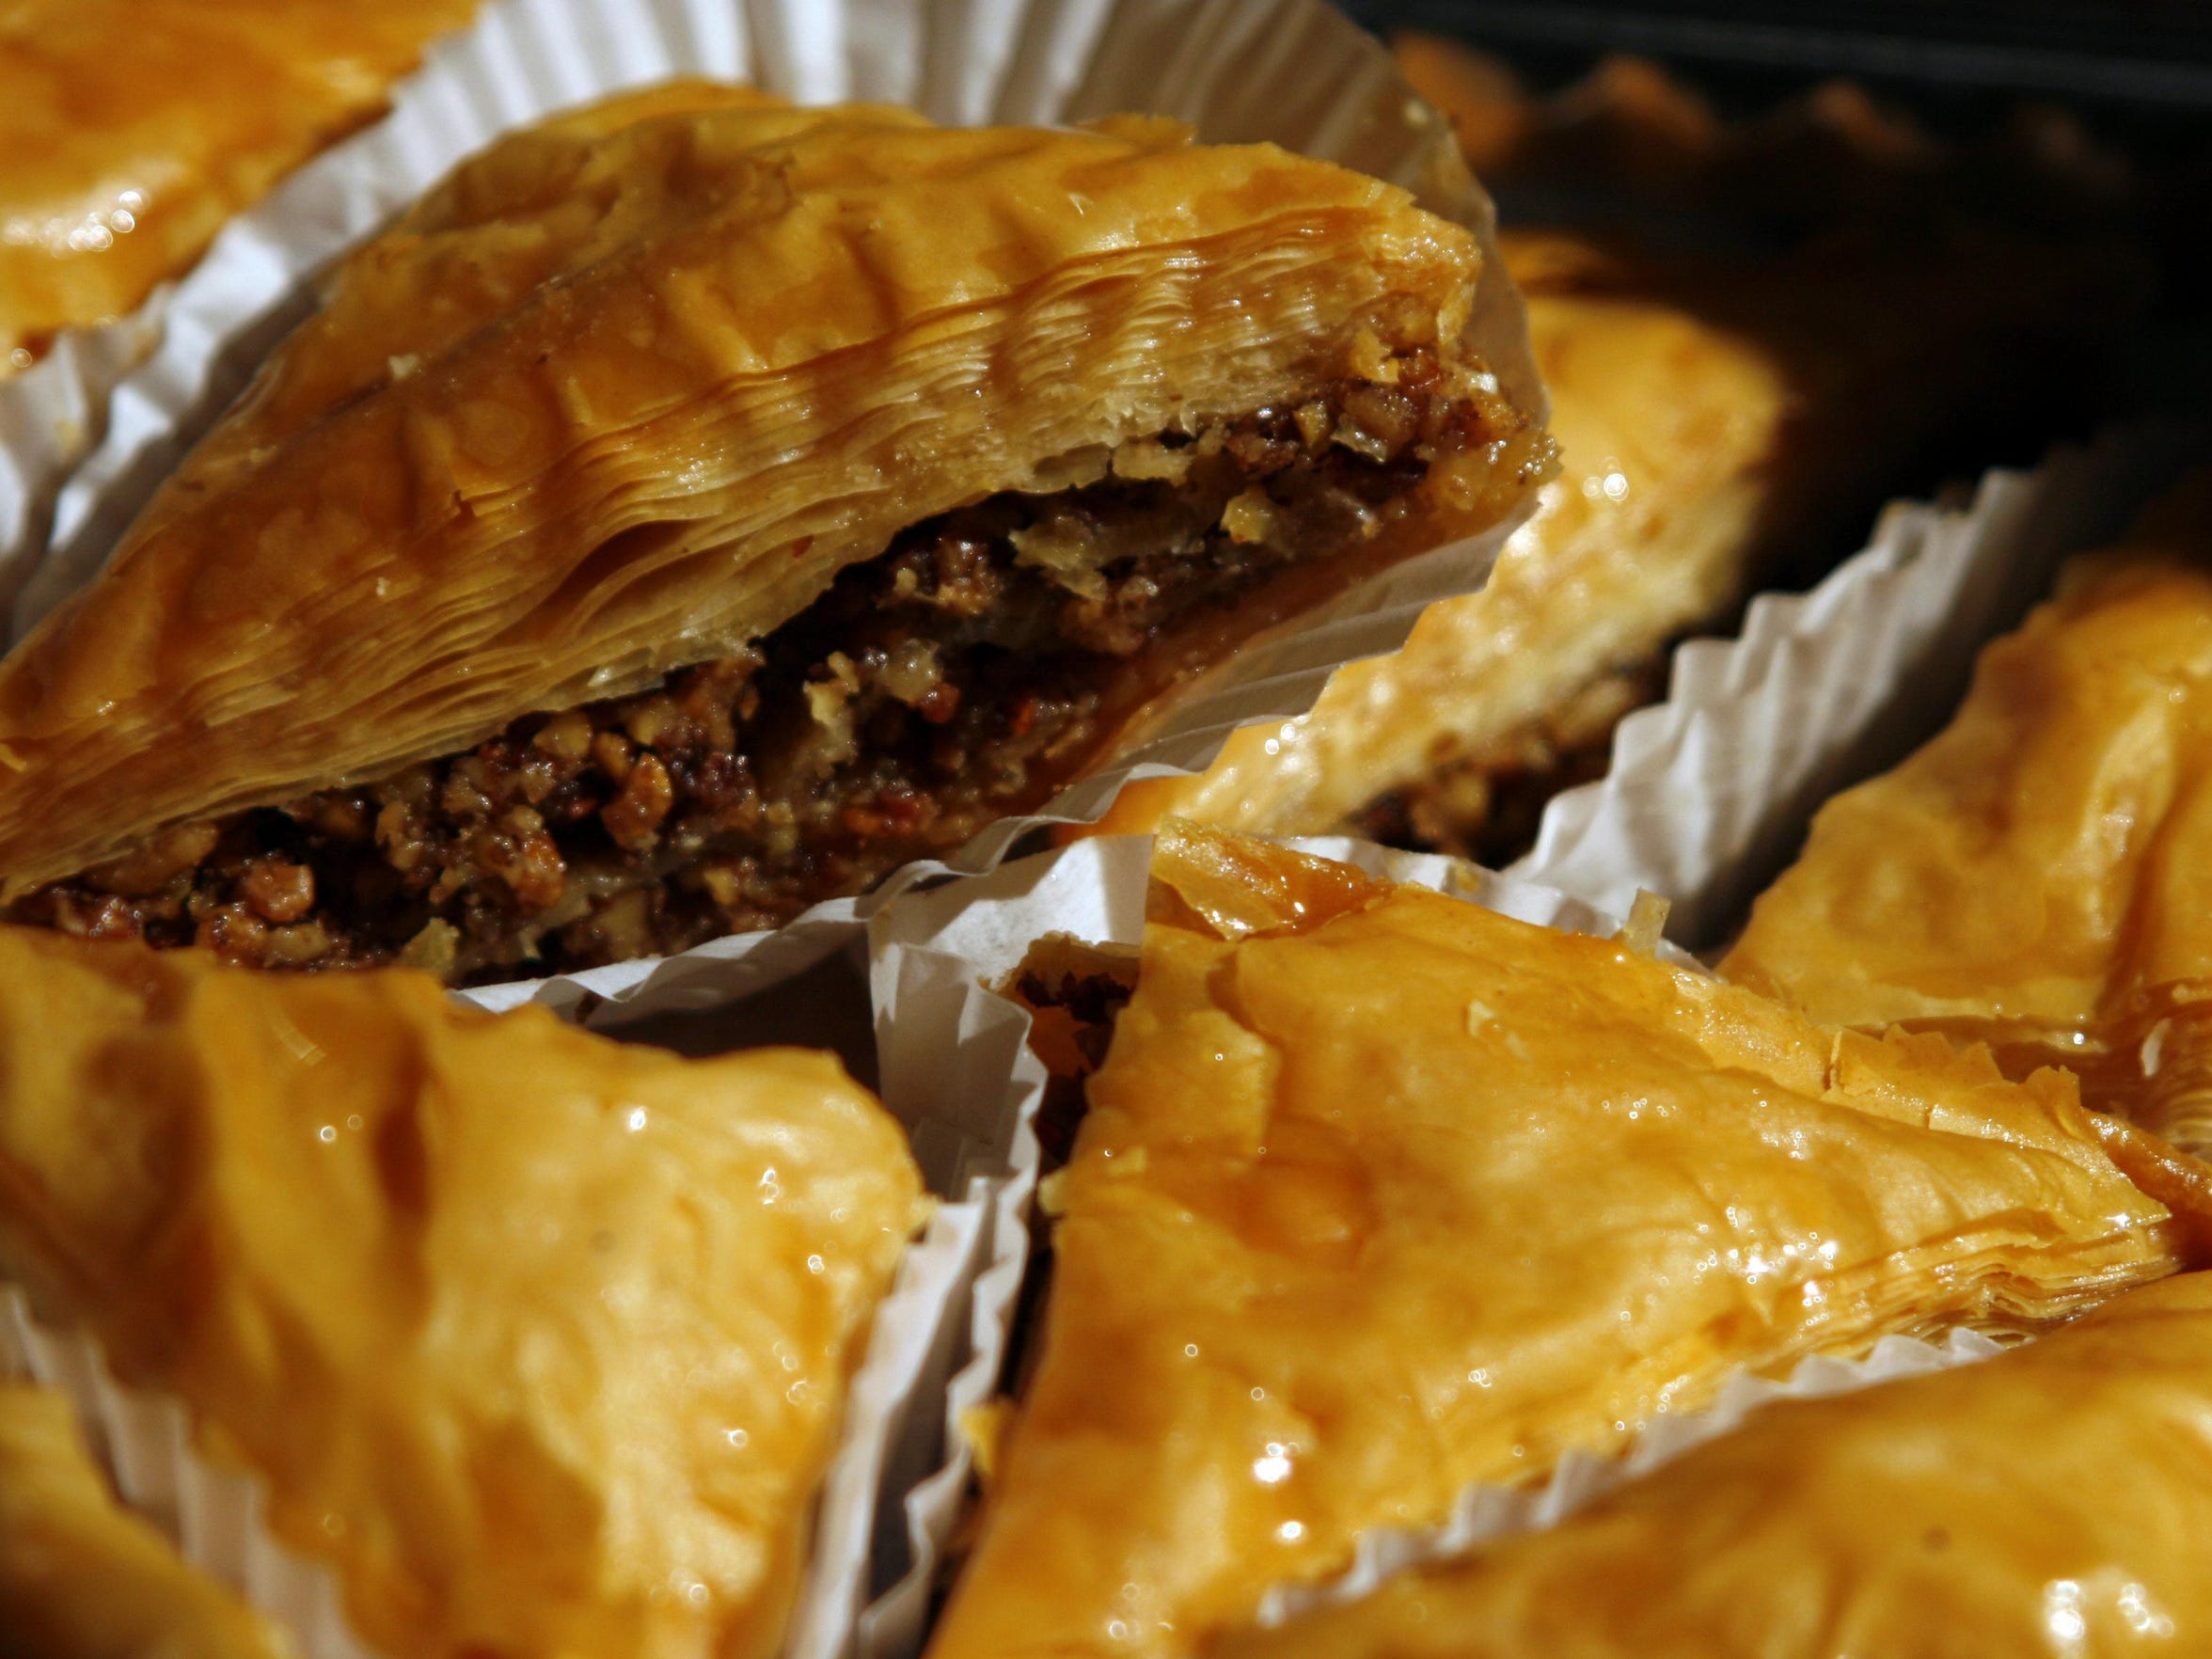 Baklava will be among the 40,000 pieces of pastry that will sold at the Greek Festival at Holy Trinity Greek Orthodox Church.